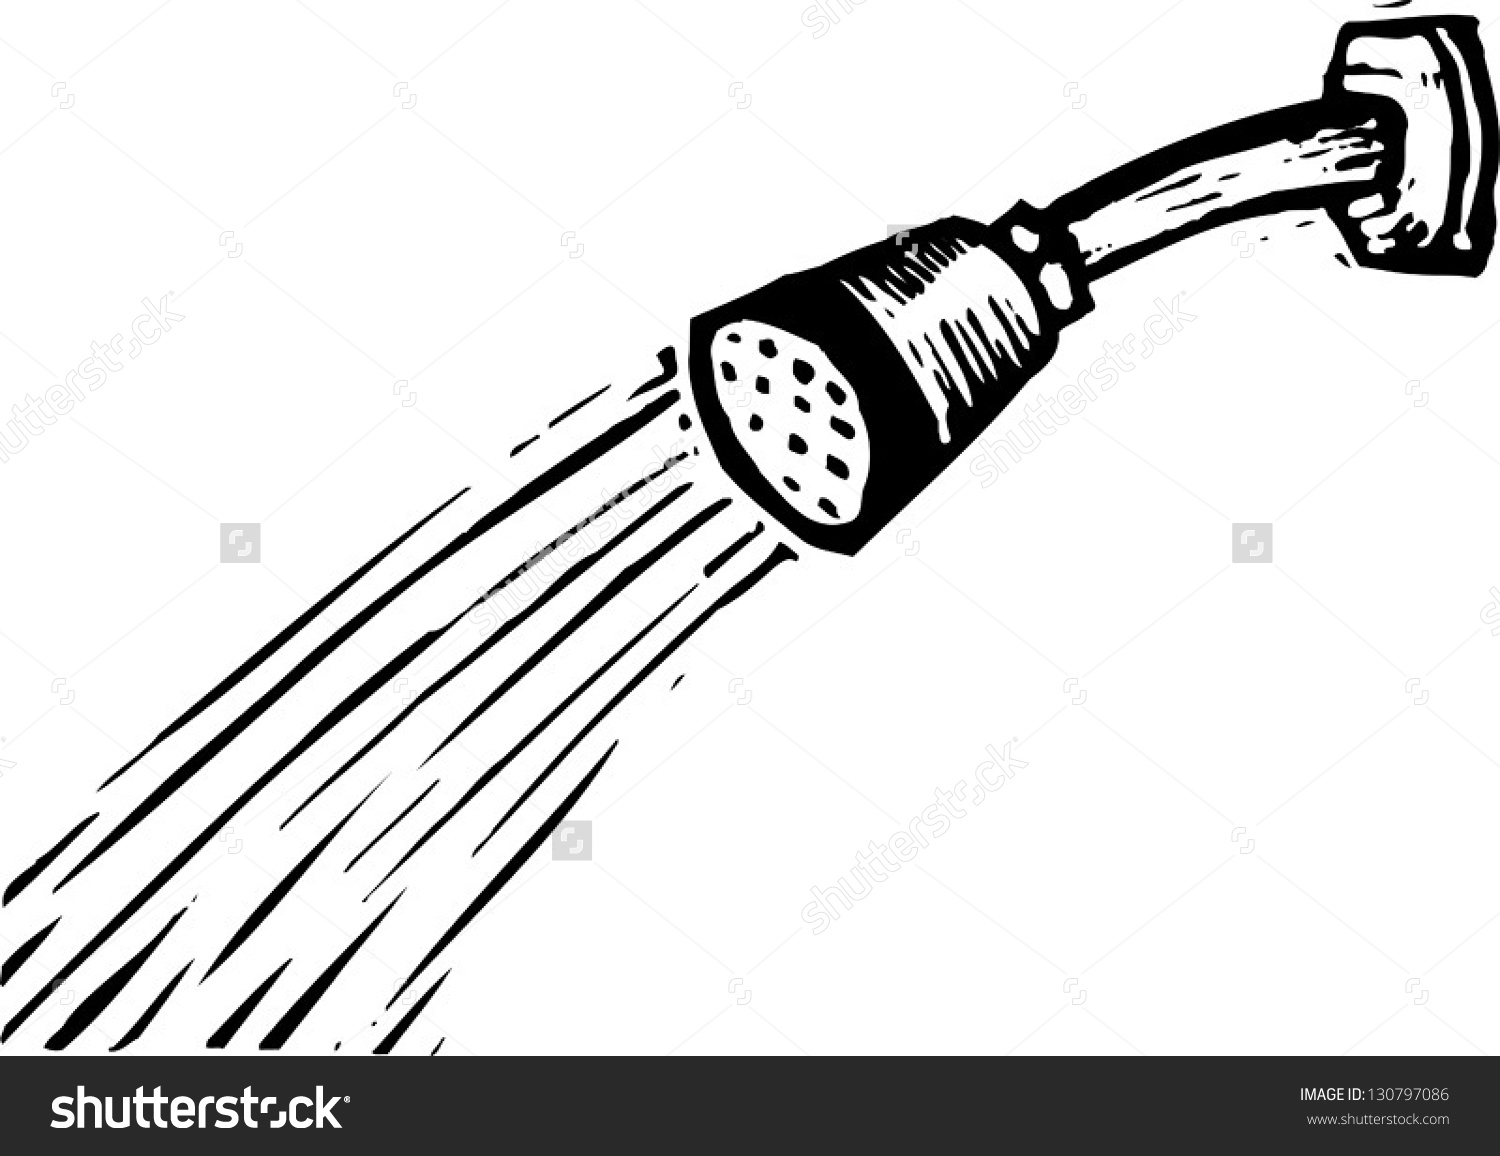 Shower clipart black and white png freeuse library Shower clipart black and white 1 » Clipart Station png freeuse library